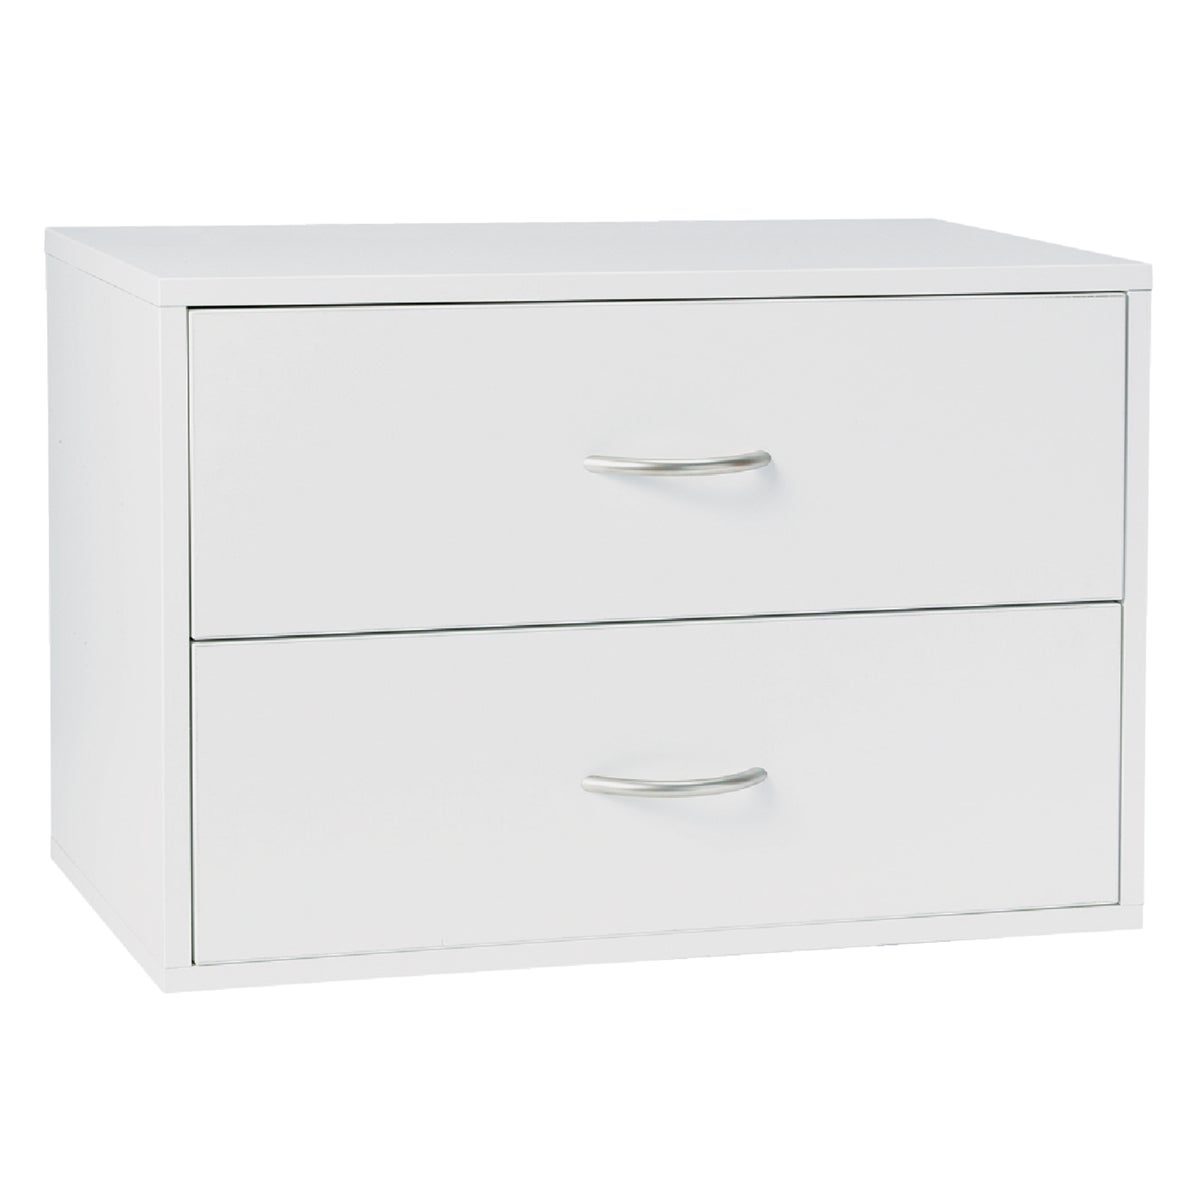 WHITE 2-DRAWER O-BOX - 7315022411 by Schulte Corp